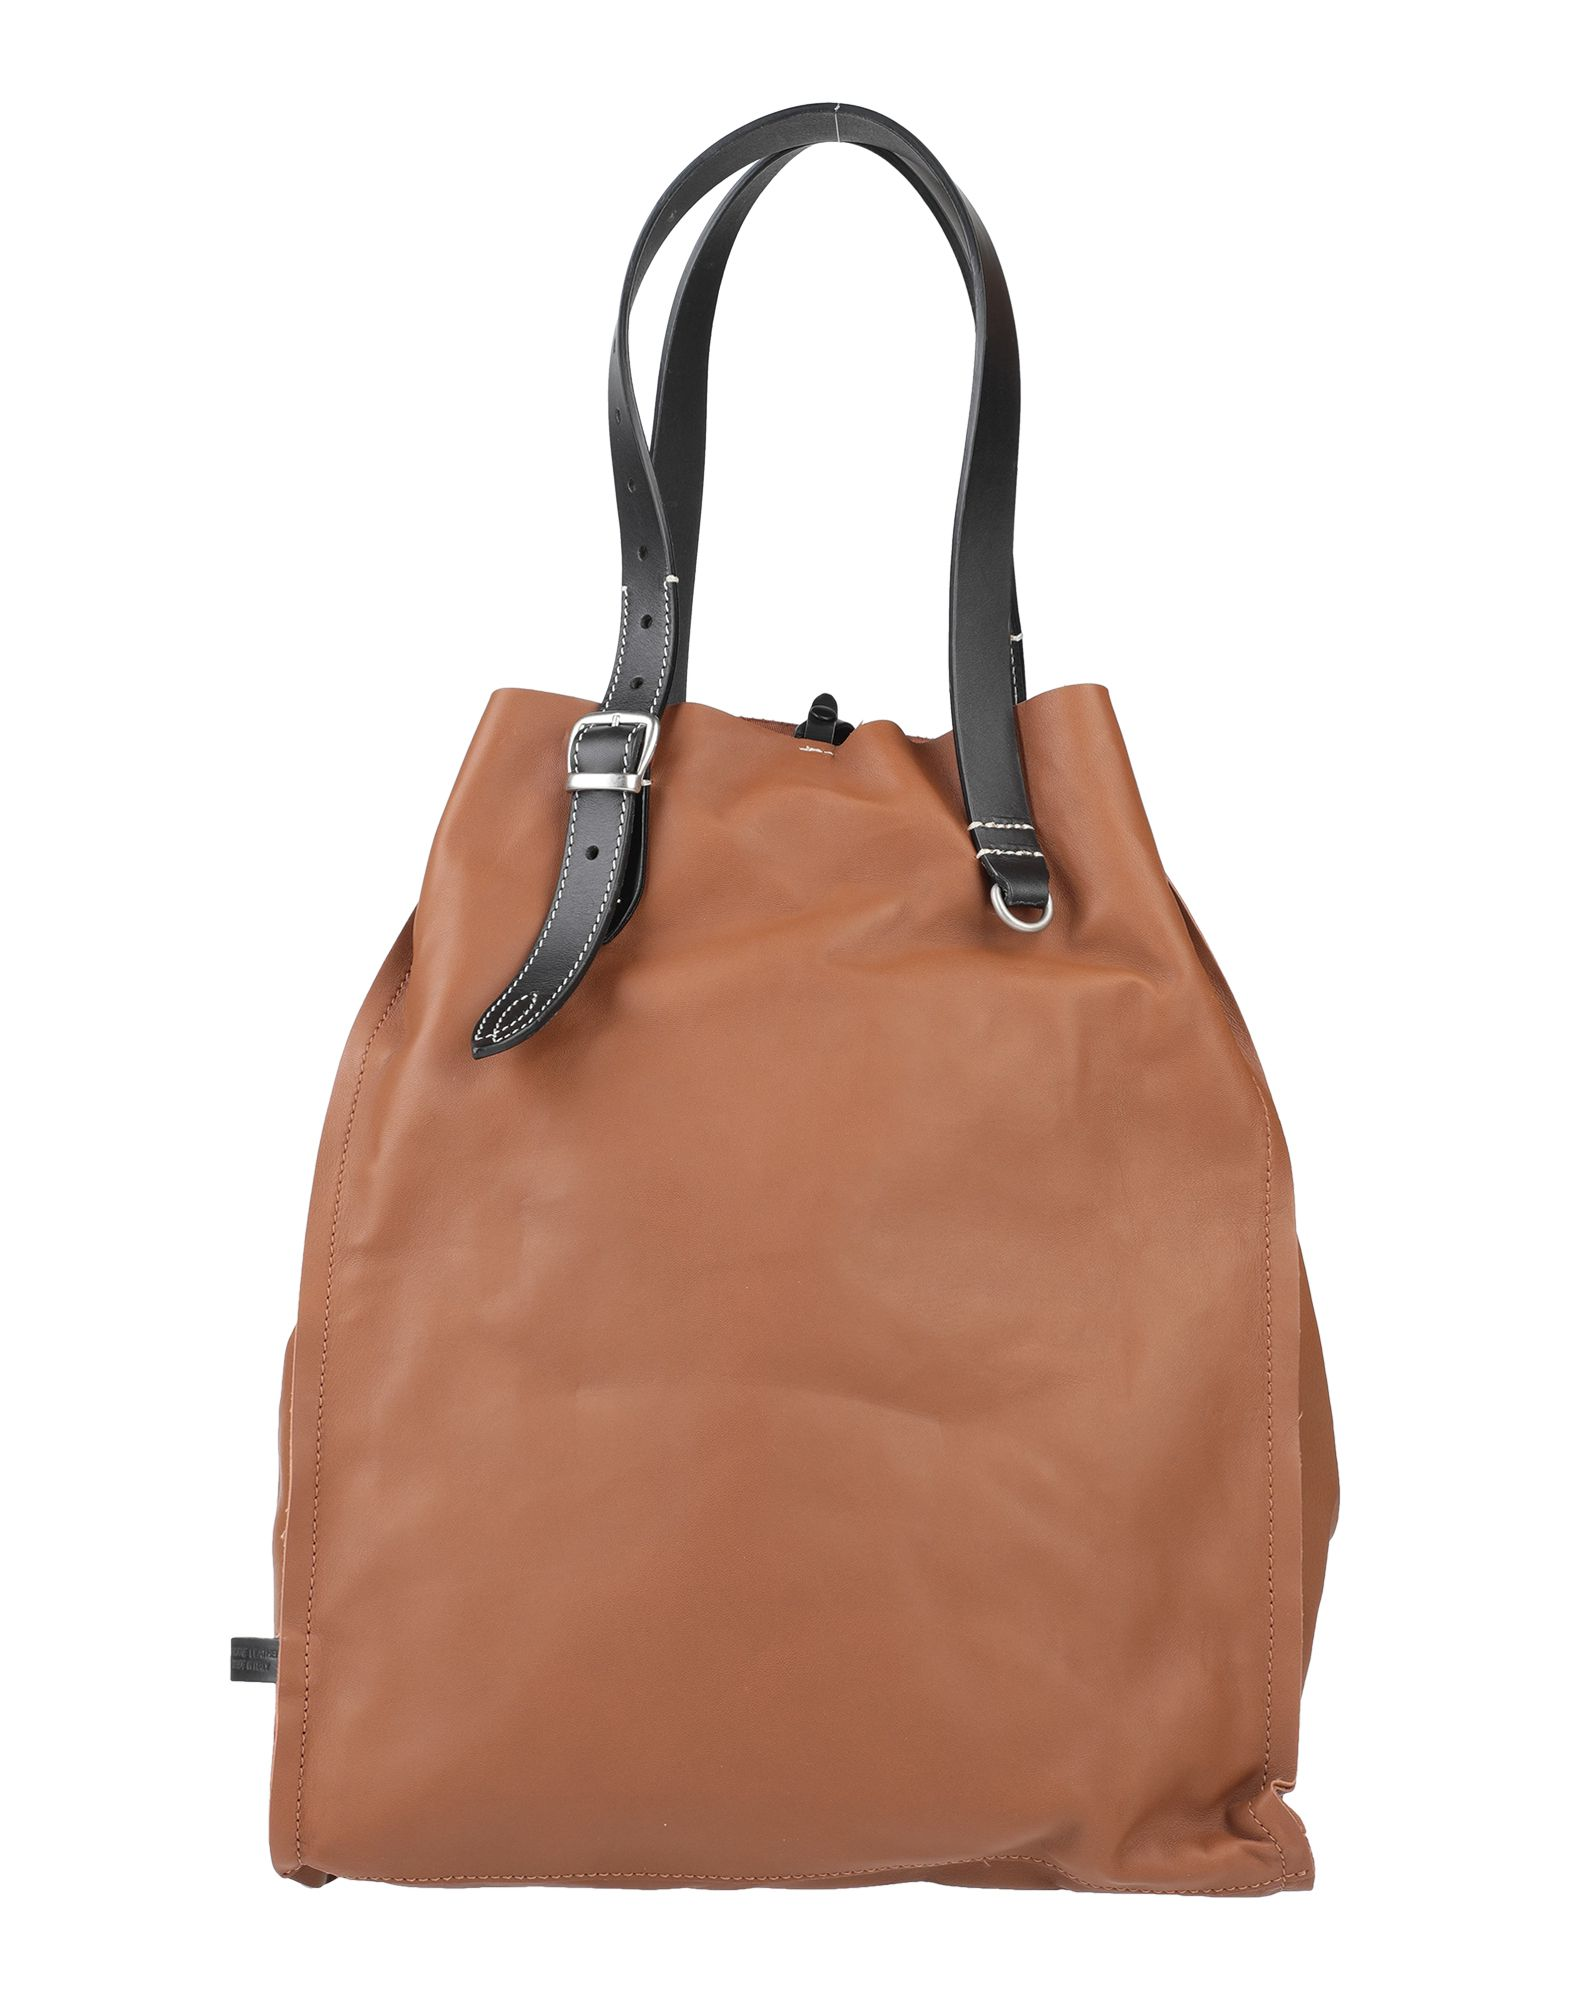 MAISON MARGIELA Handbags. maxi, leather, no appliqués, solid color, snap buttons fastening, internal pockets, double handle, fully lined, contains non-textile parts of animal origin. 100% Ovine leather